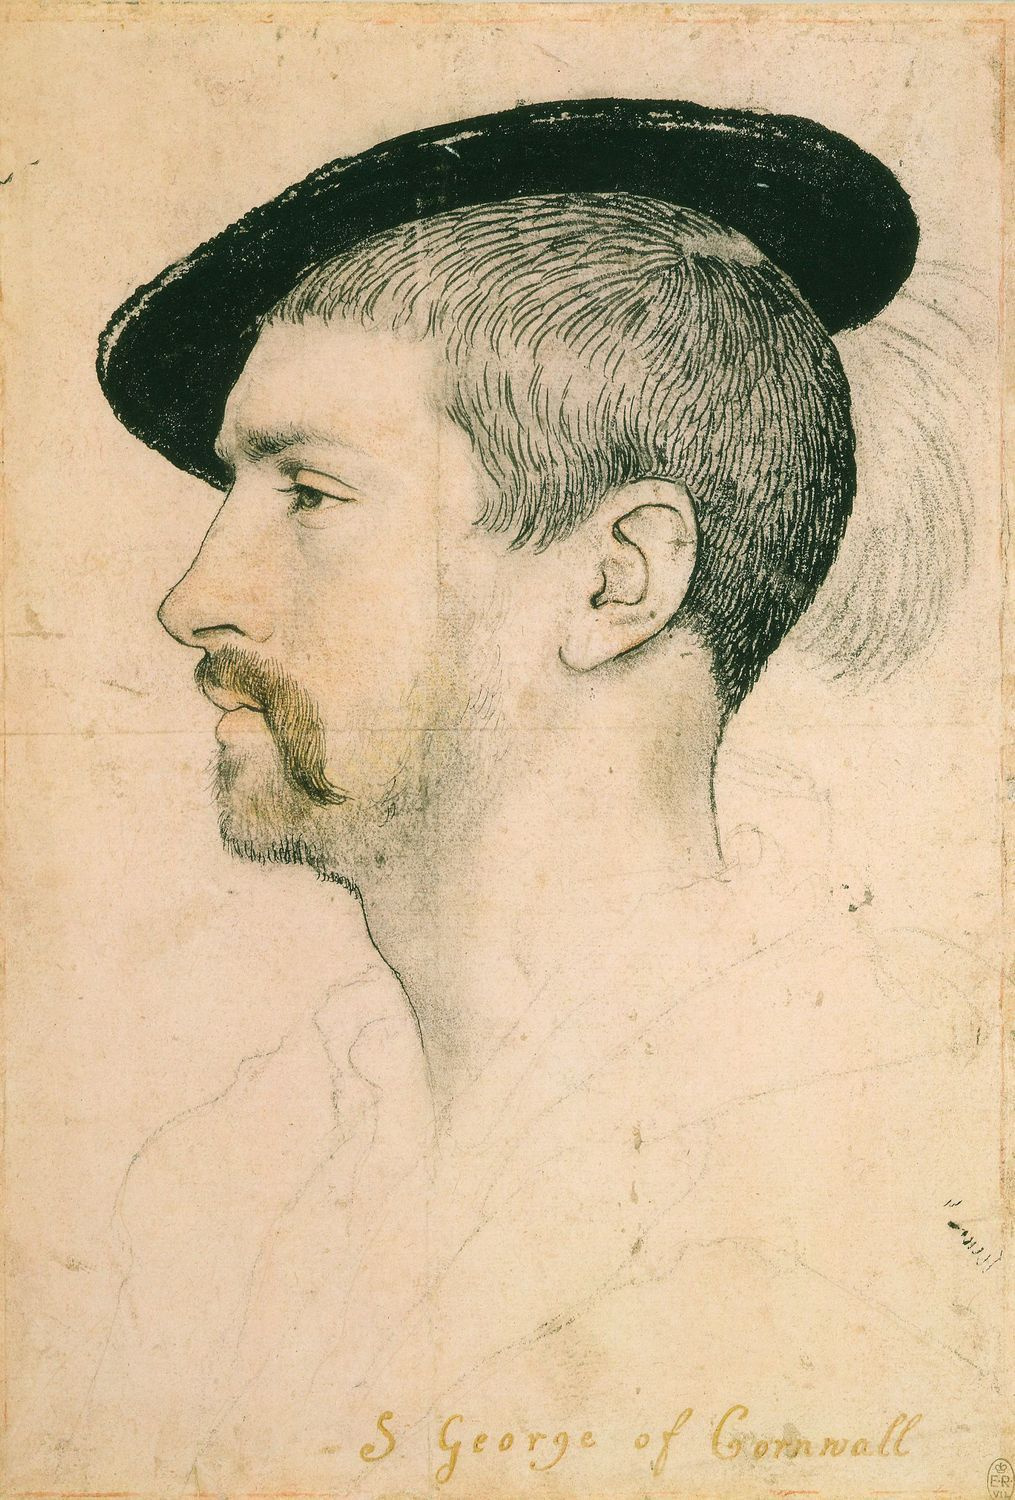 Portrait of Simon George. c.1535-37